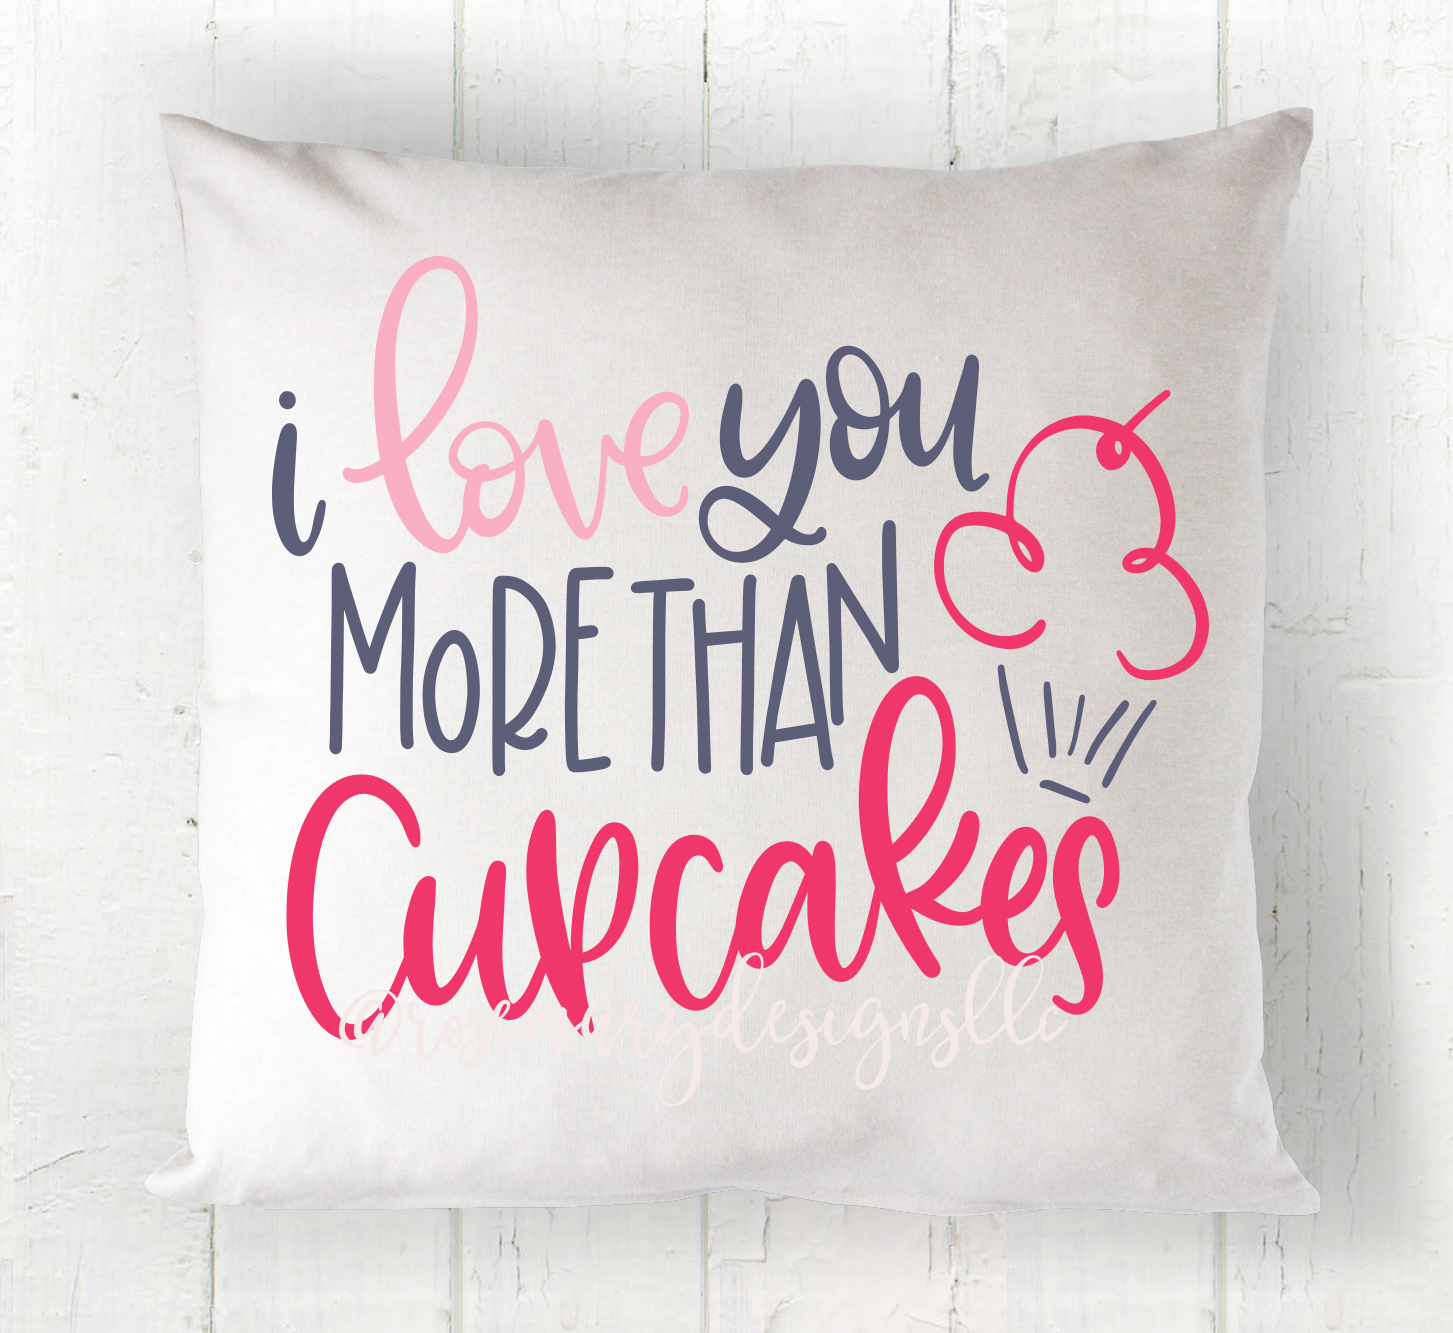 I love you more than Cupcakes - Hand Lettered SVG example image 1